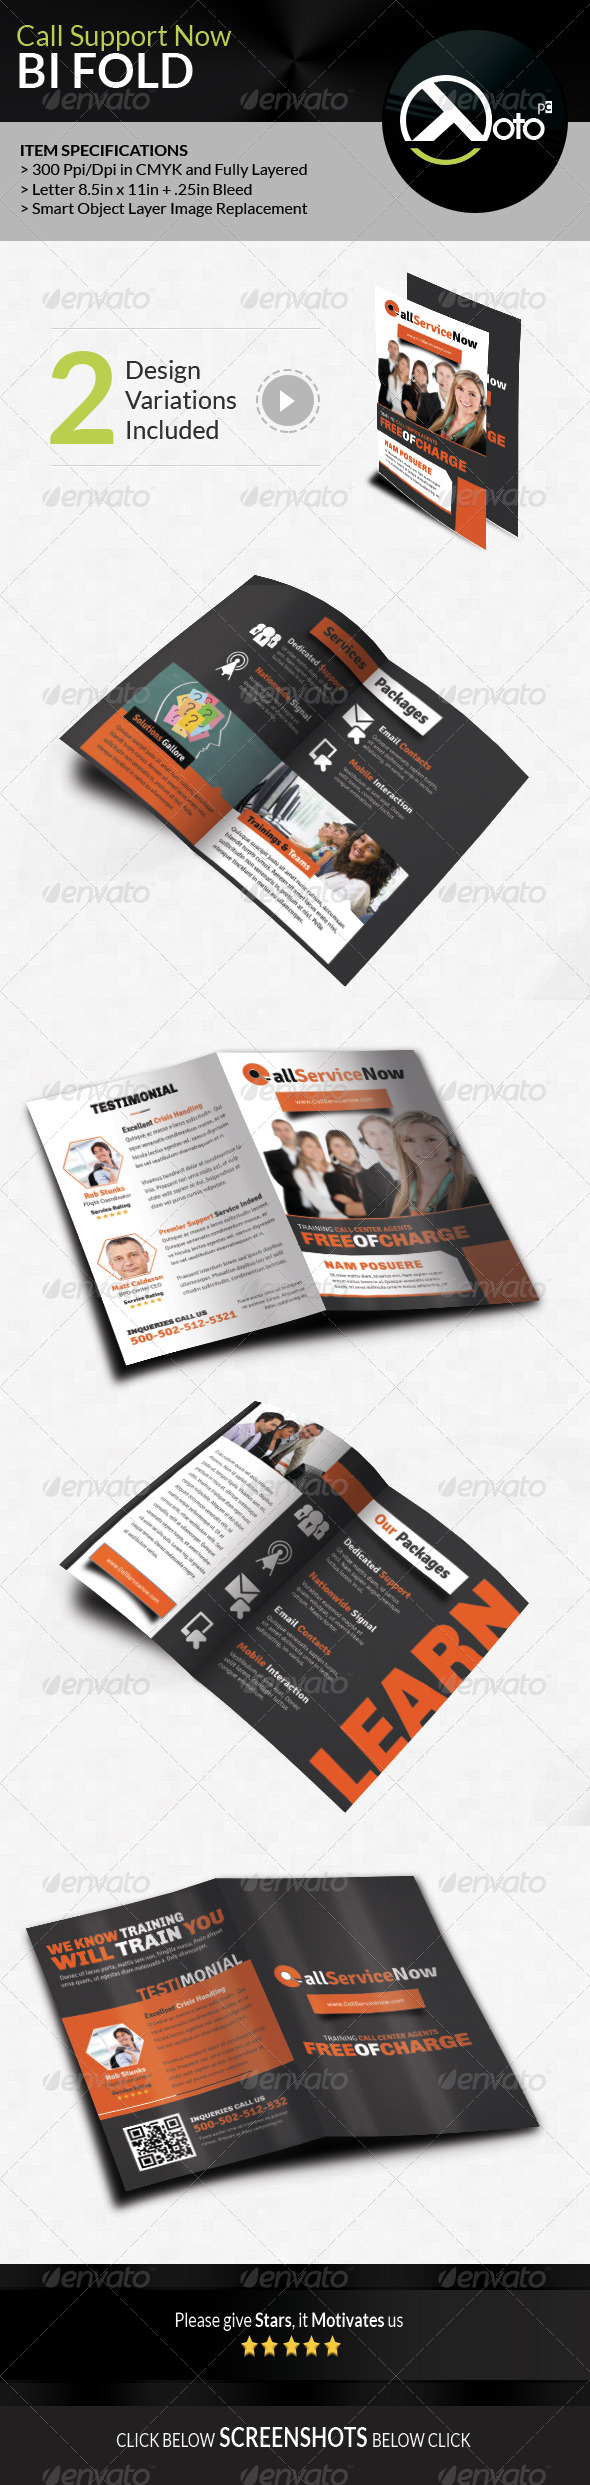 GraphicRiver Call Support Now Call Center Solutions Bifold 7964667